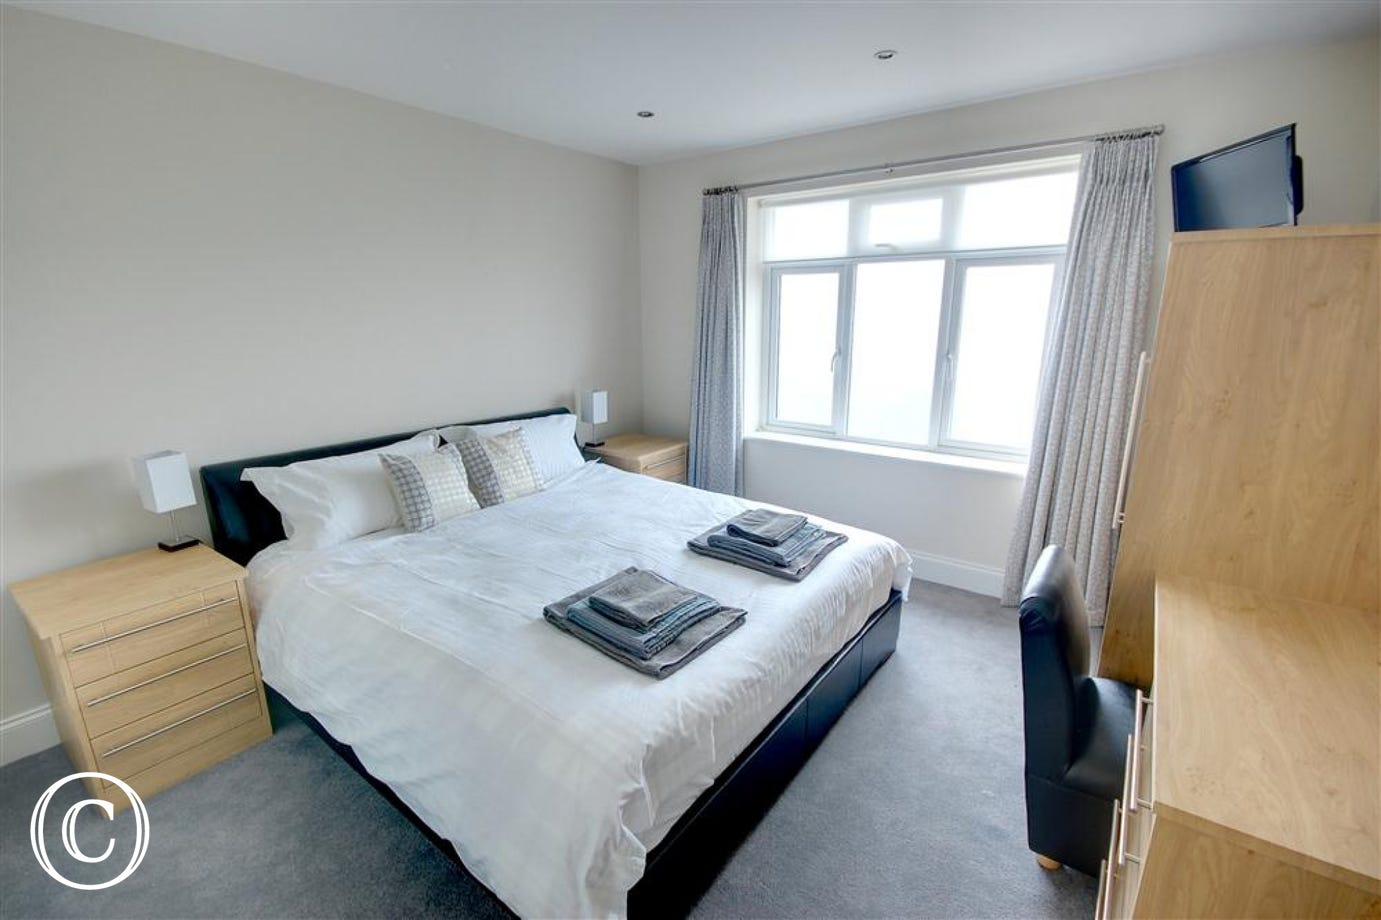 Large king-sized bed and high quality fitted furniture make this an attractive Master Bedroom.